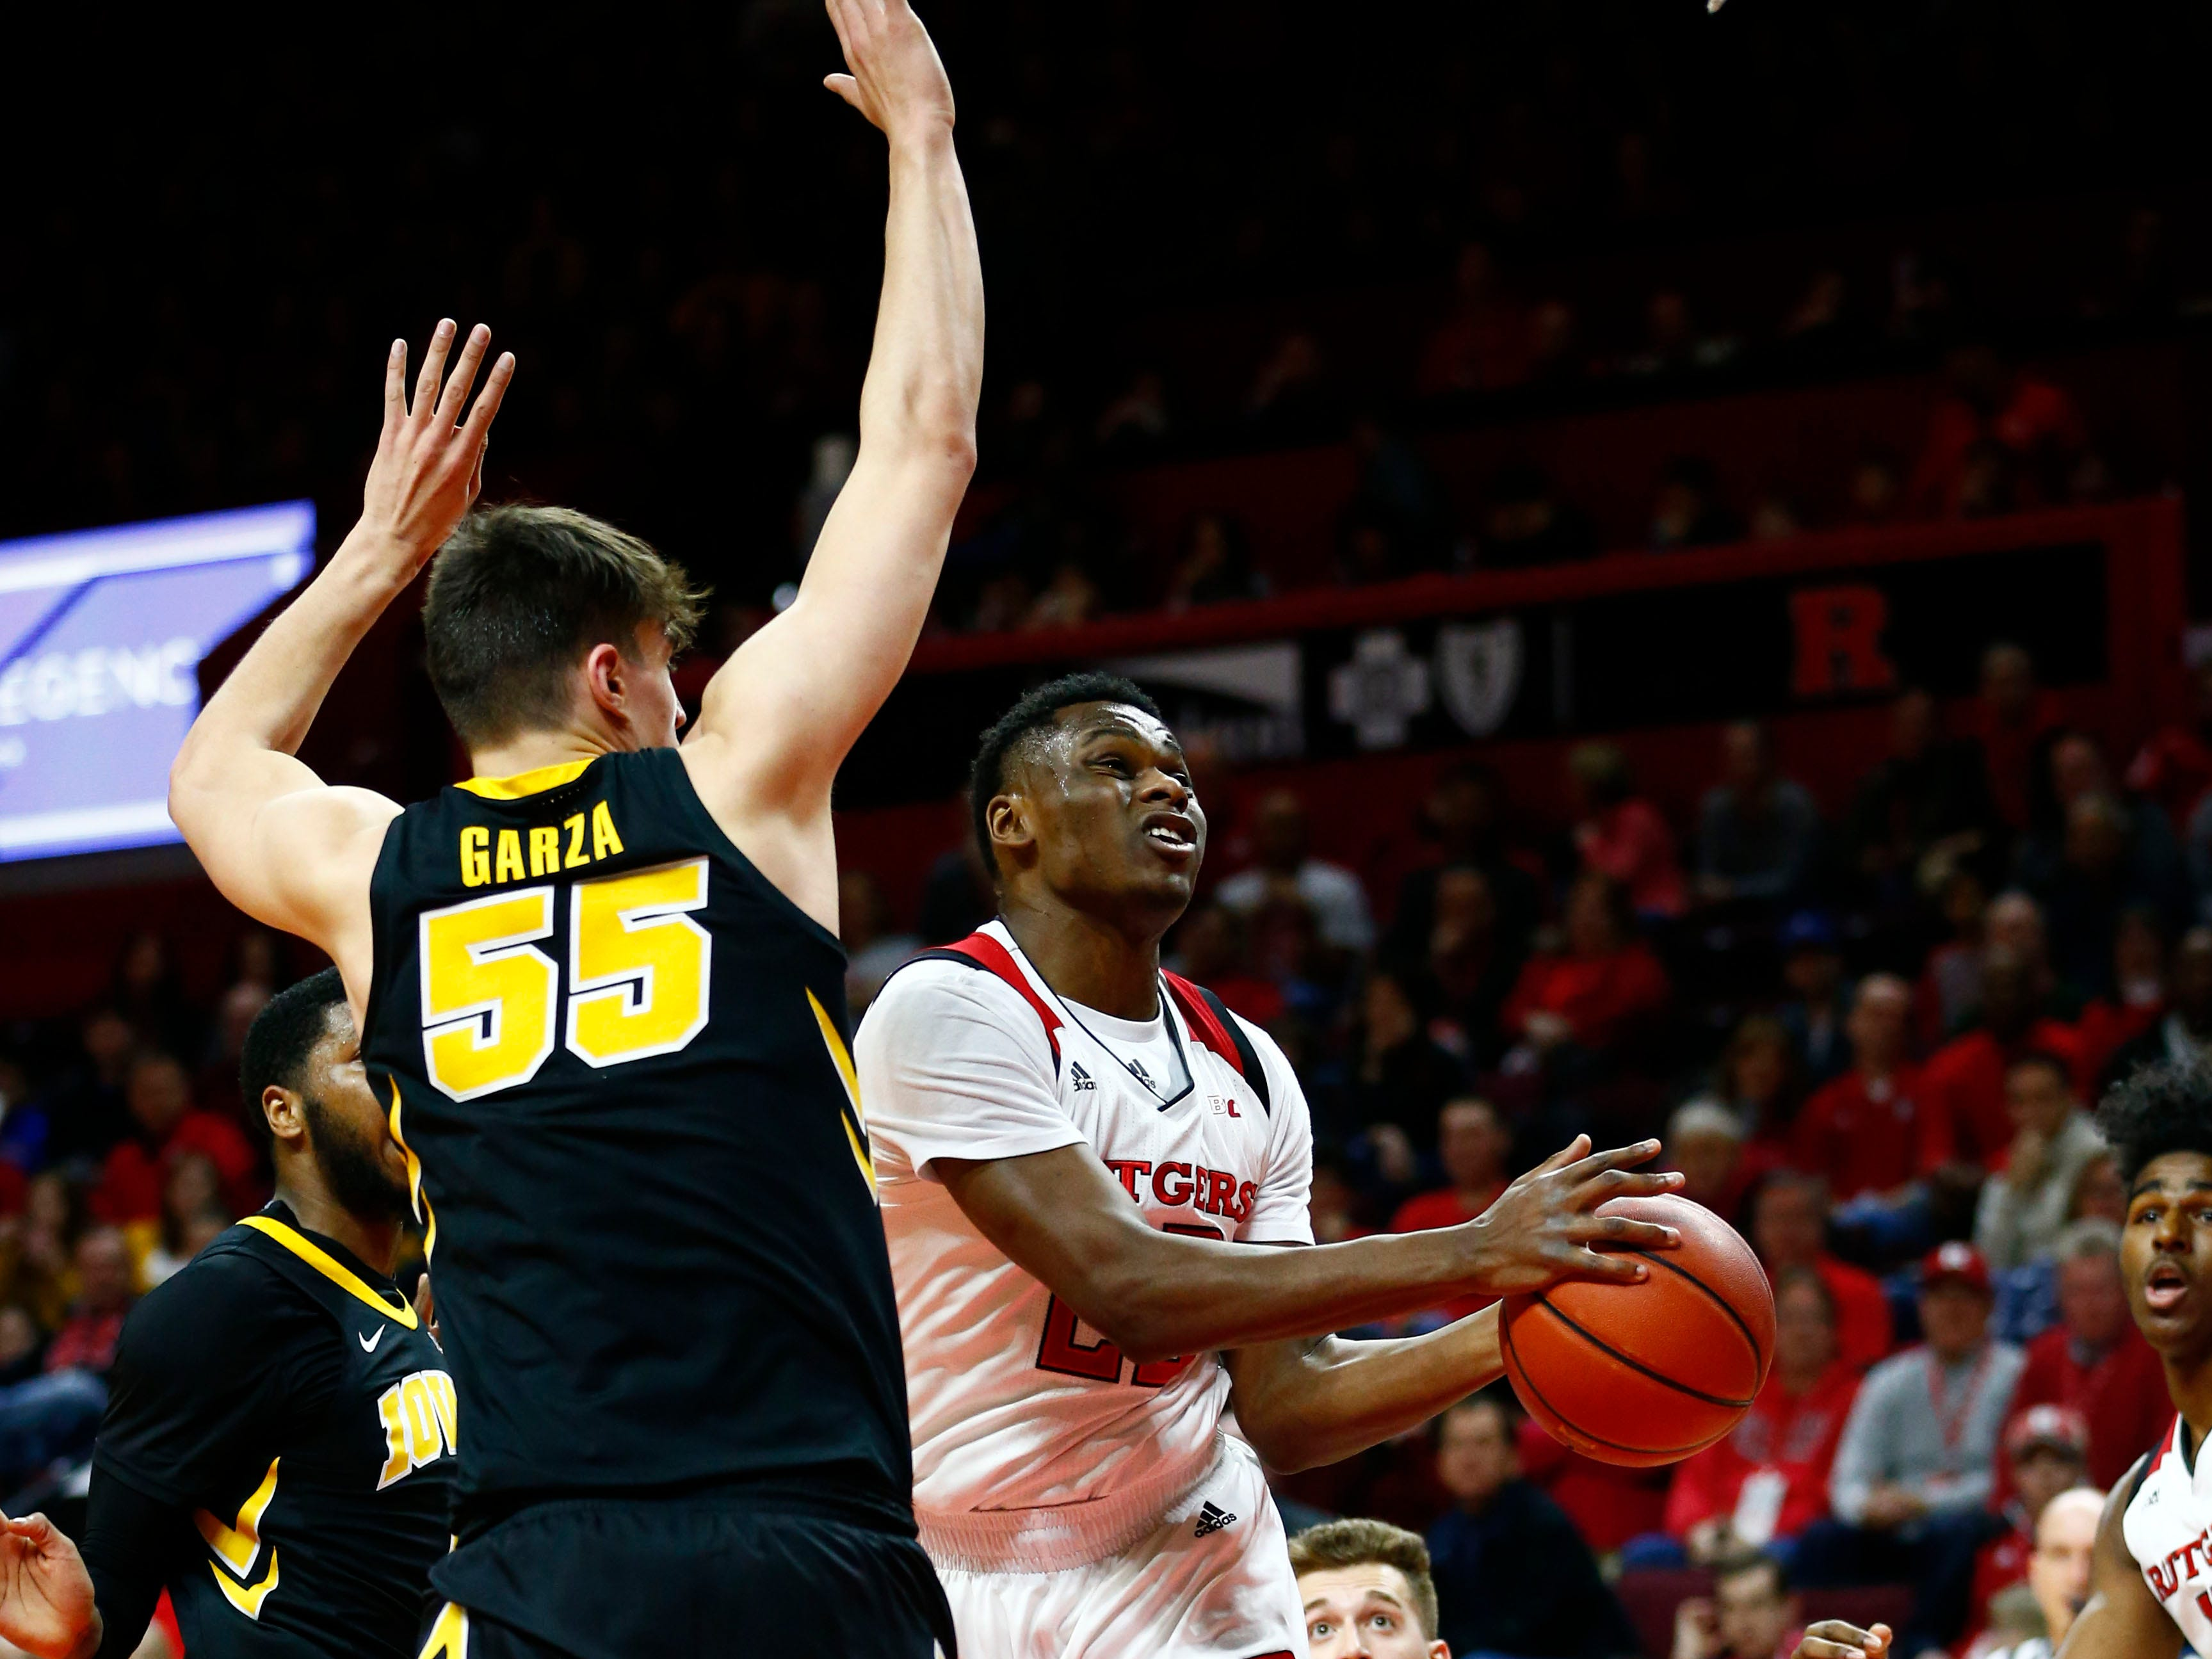 Rutgers Scarlet Knights guard Montez Mathis (23) goes to the basket against Iowa Hawkeyes forward Luka Garza (55) during the first half at Rutgers Athletic Center (RAC). Mandatory Credit: Noah K. Murray-USA TODAY Sports